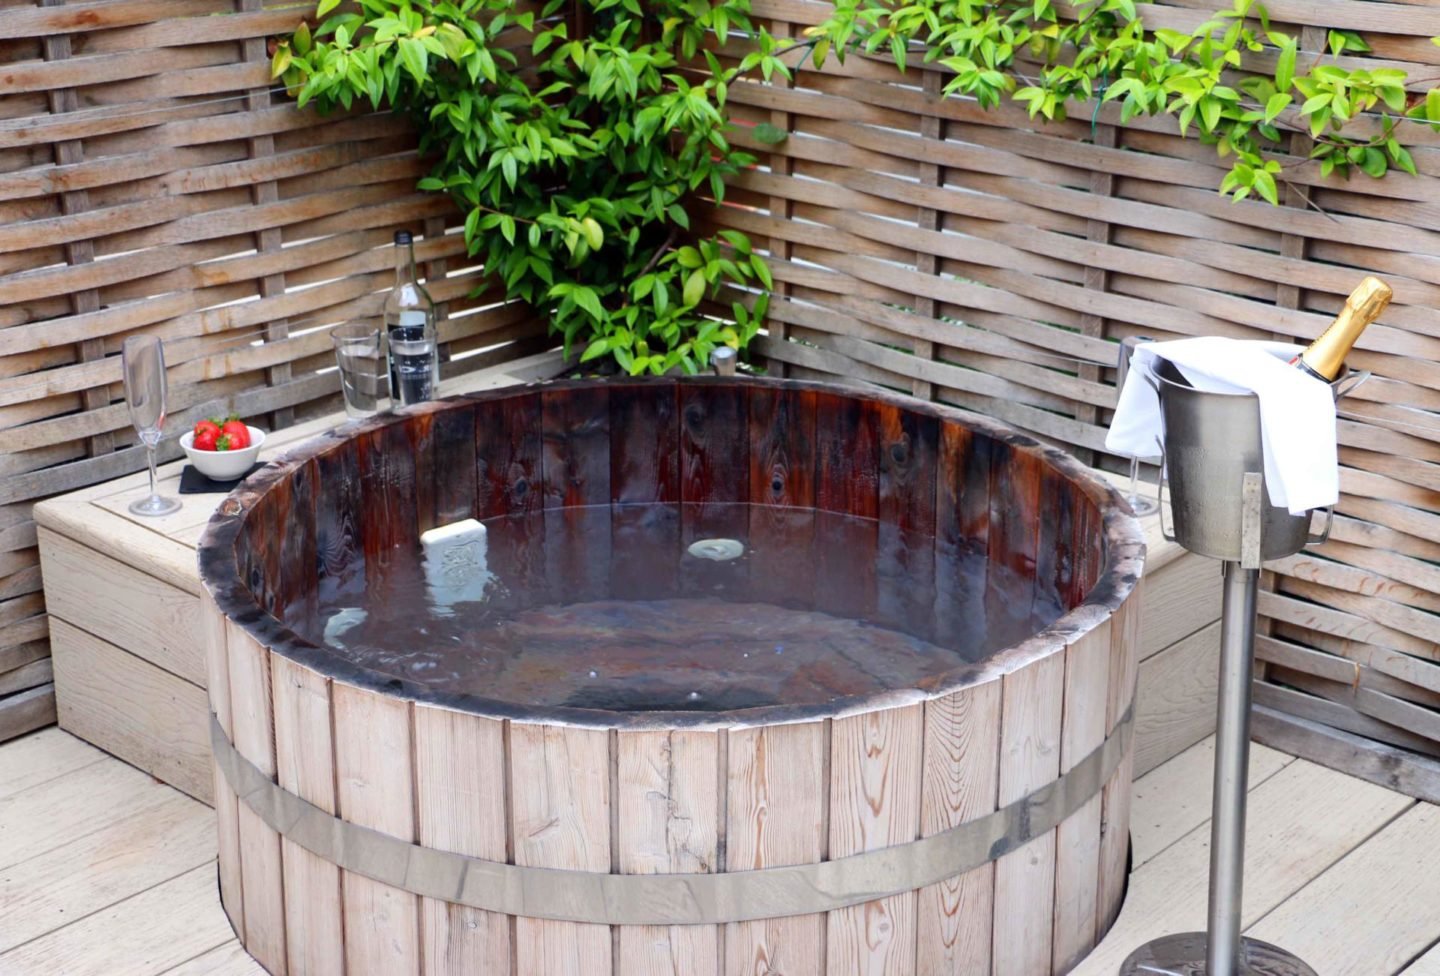 Top 5 Uk Luxury Hotels With Outdoor Hot Tubs The Foodaholic